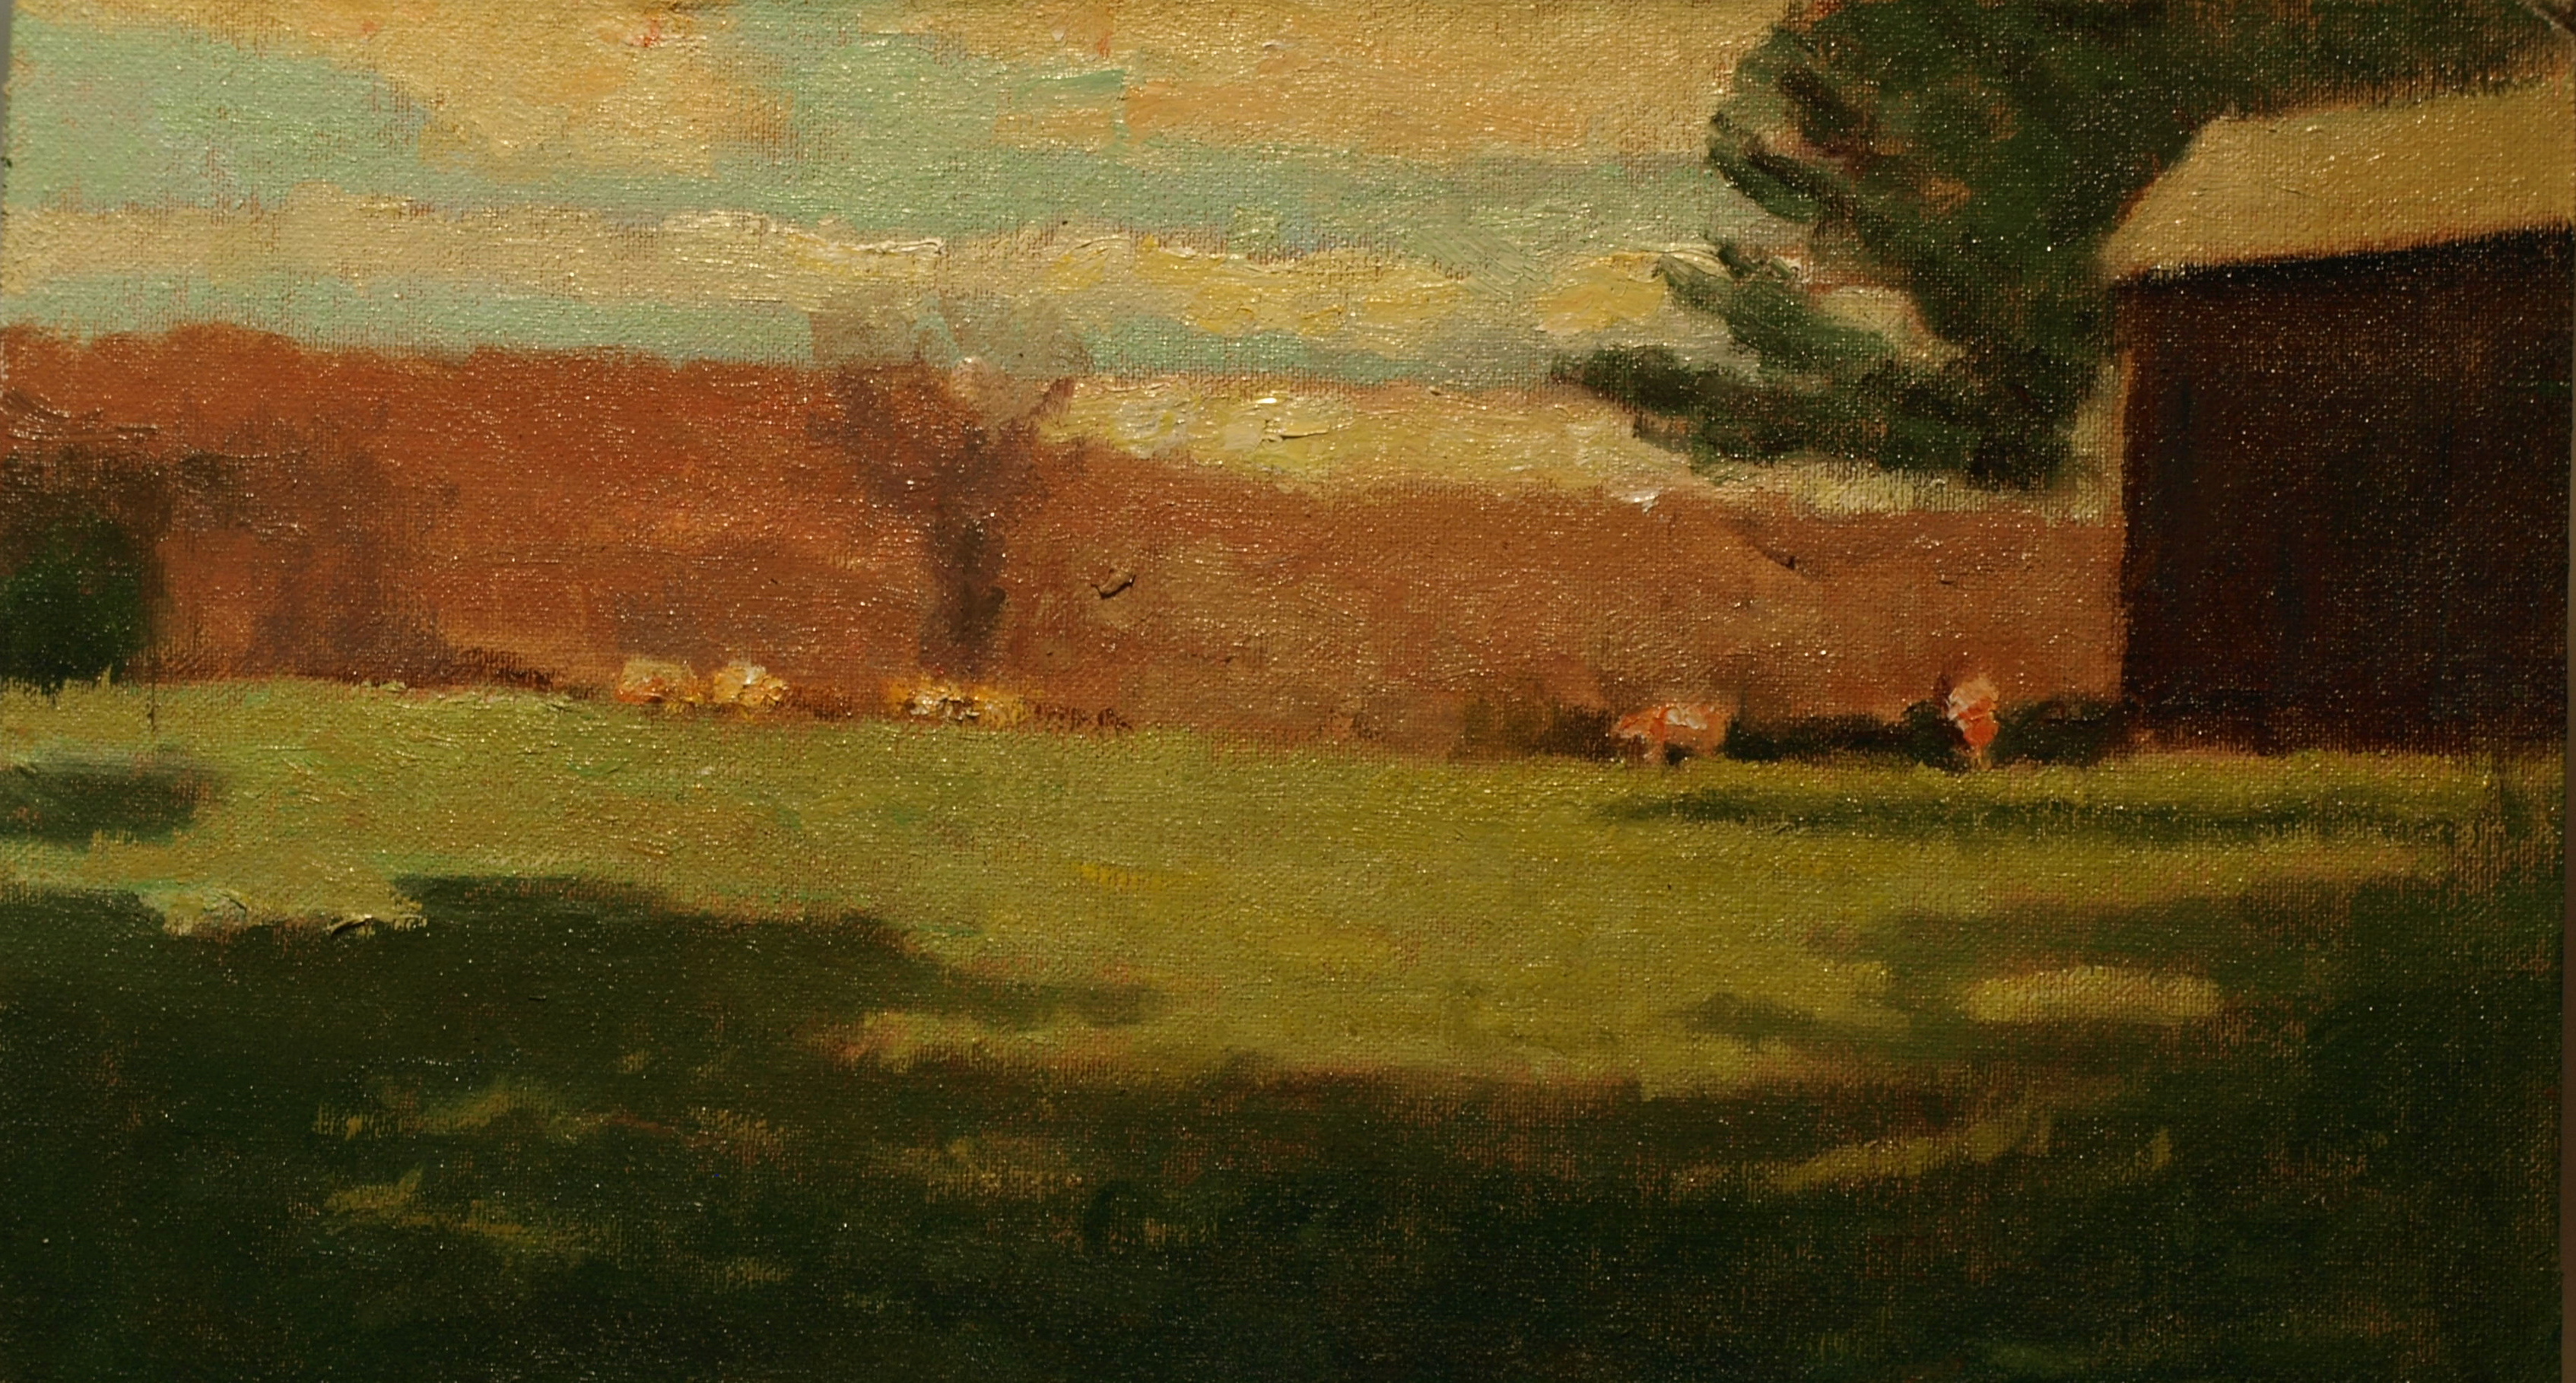 Cows on the Crest of the Hill, Oil on Canvas on Panel, 8 x 14 Inches, by Richard Stalter, $225